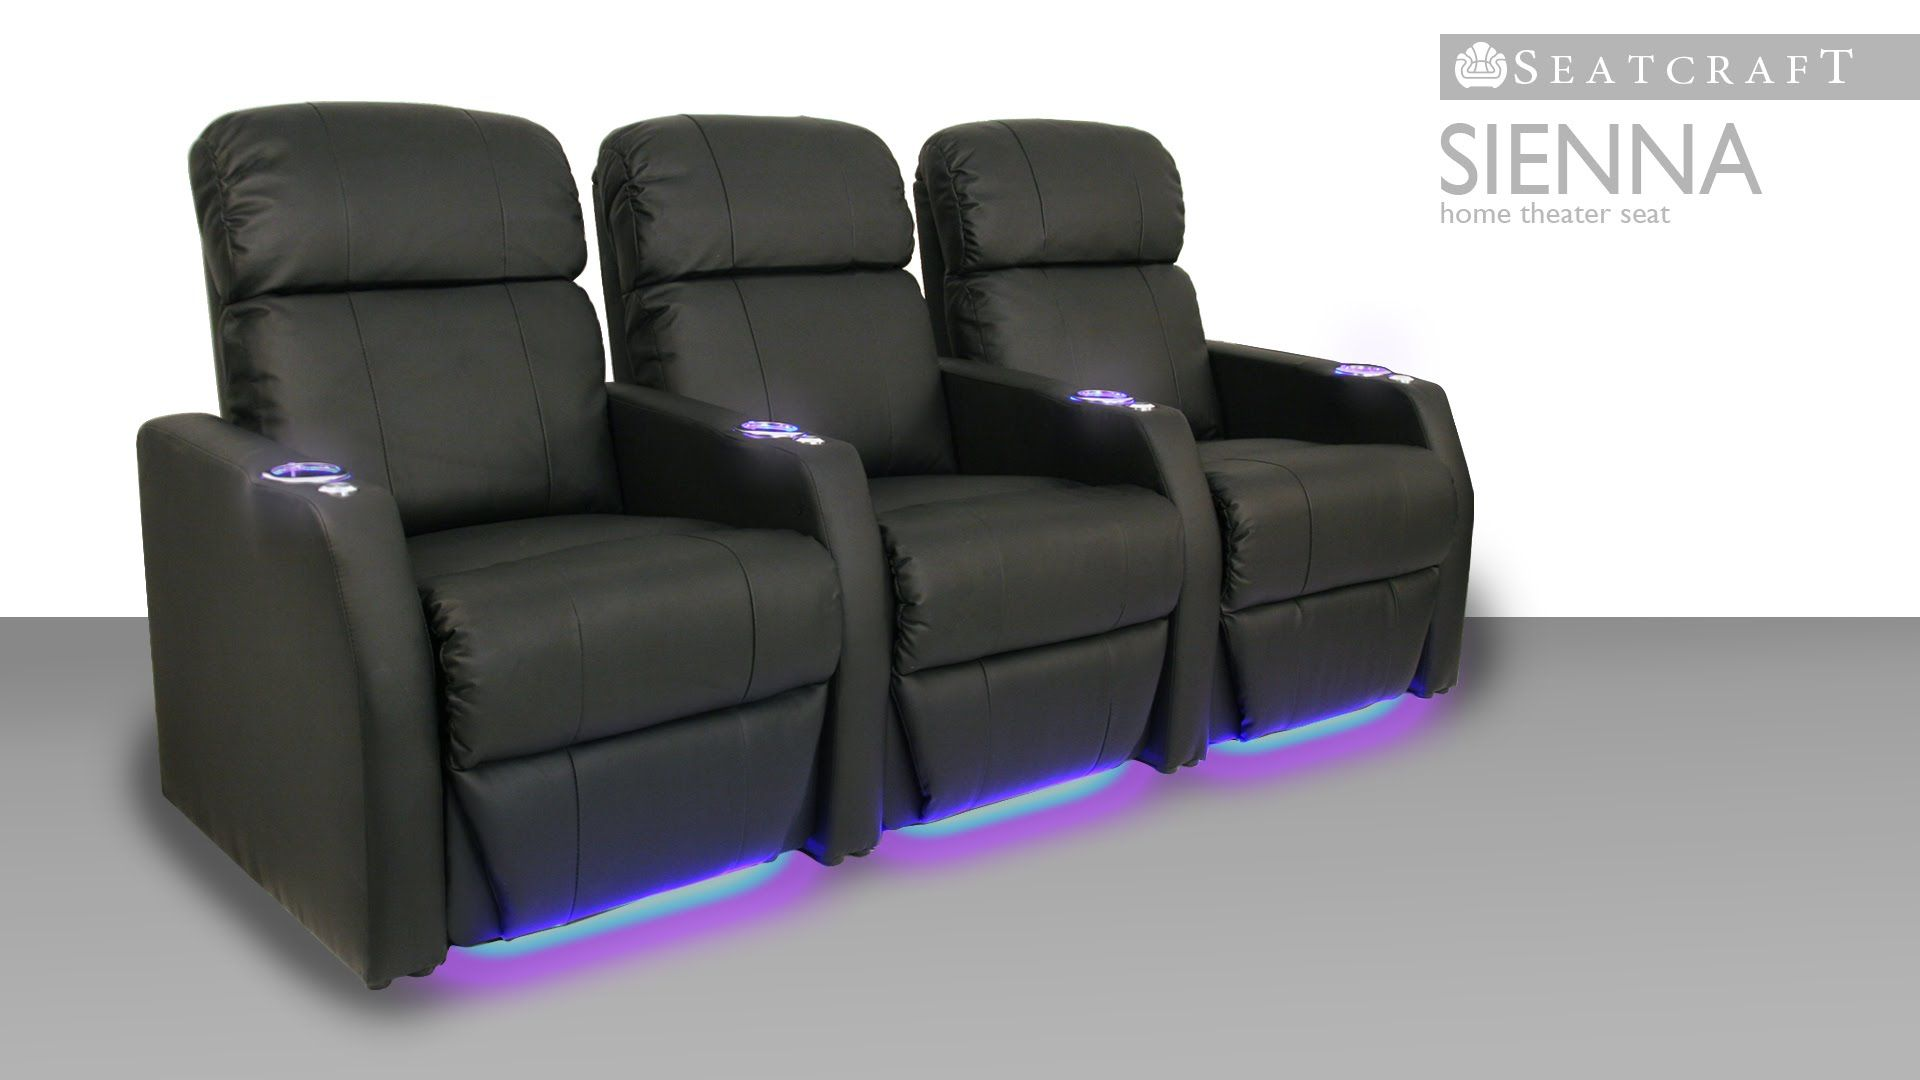 The Seatcraft Sienna Home Theater Seat Is Renowned For Its Elegant E Saving Design And Accented With Ambient Lighting Swivel Tray Tables